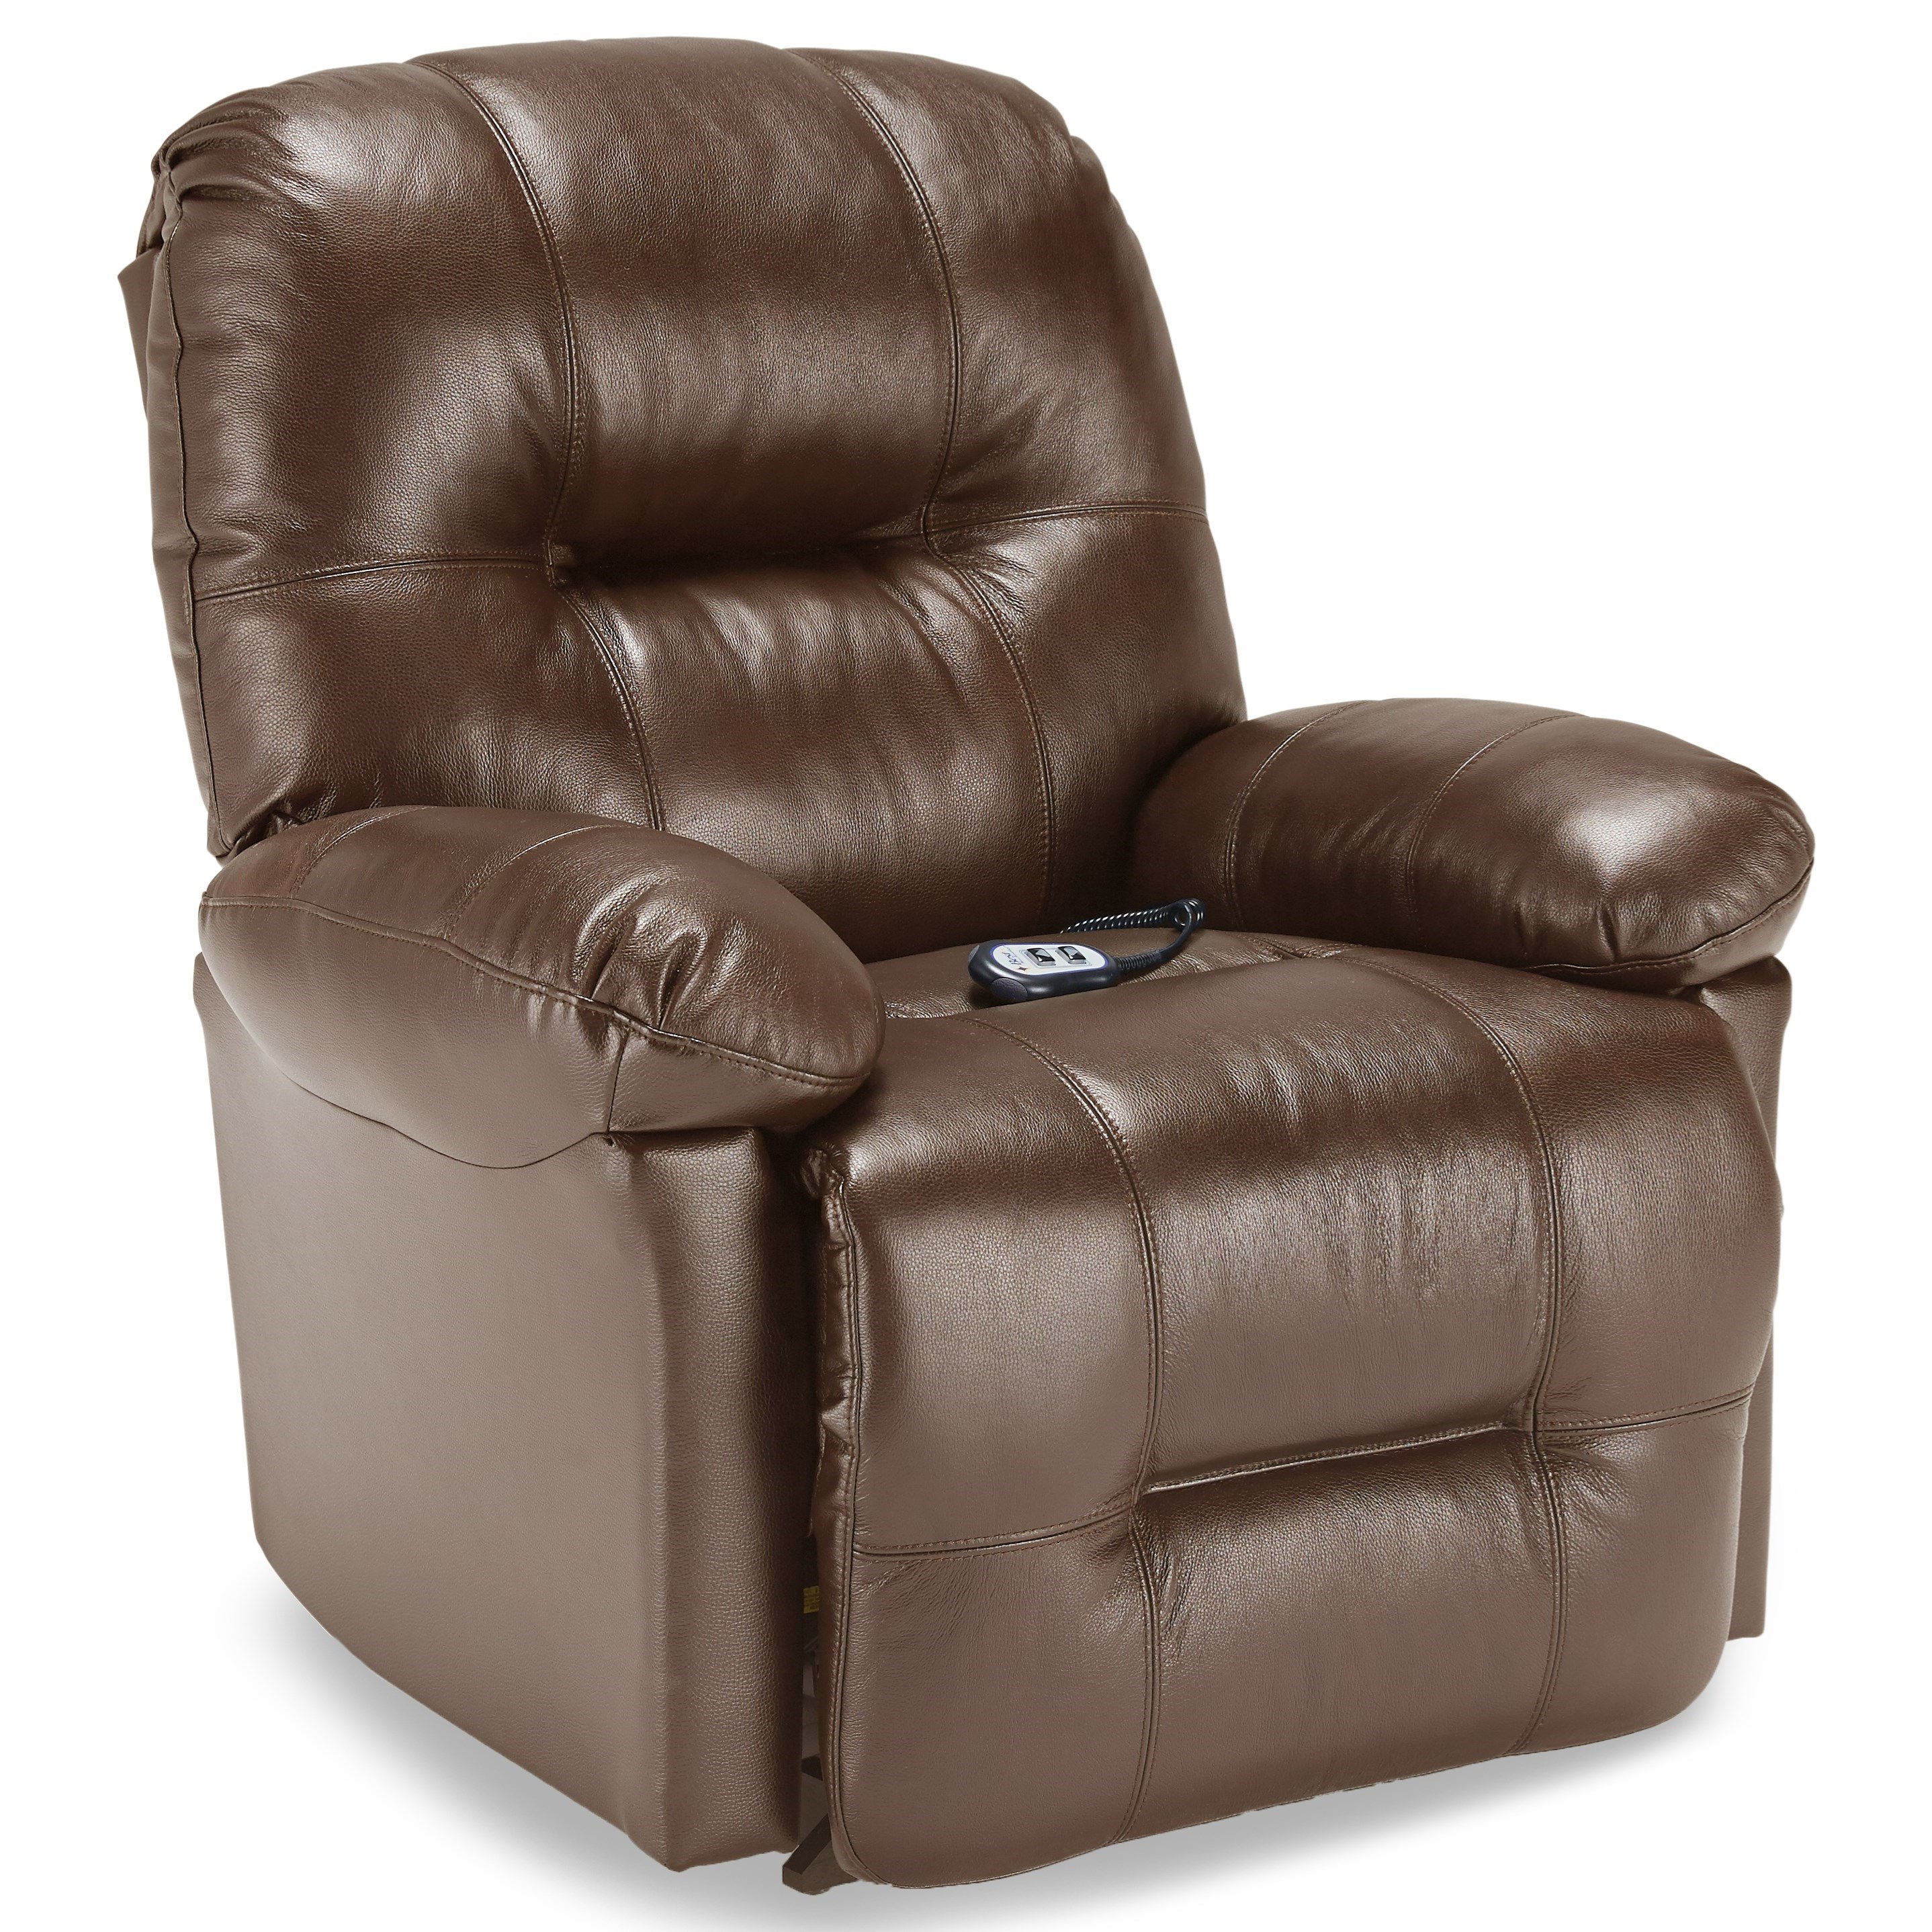 S501 Zaynah Power Swivel Glider Recliner by Best Home Furnishings at EFO Furniture Outlet